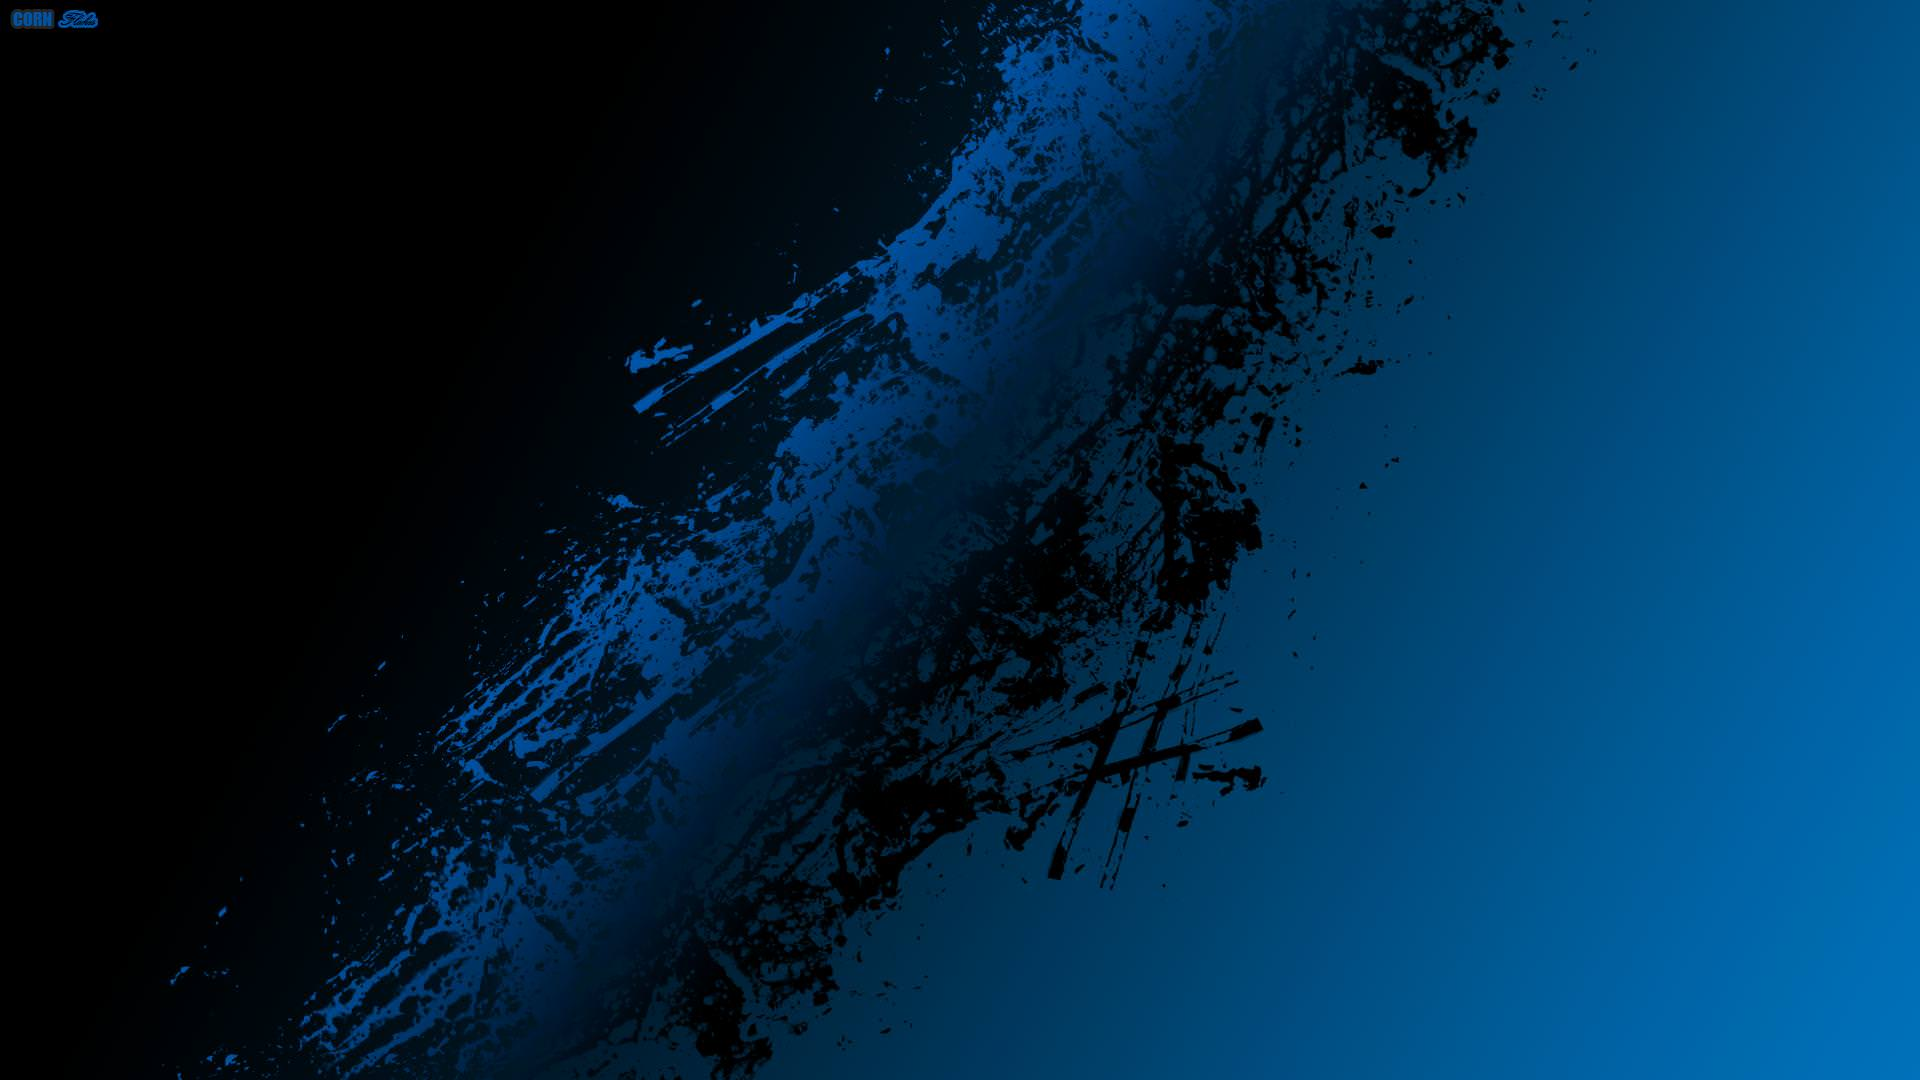 21 Blue Abstract Wallpapers Backgrounds Pictures 1920x1080